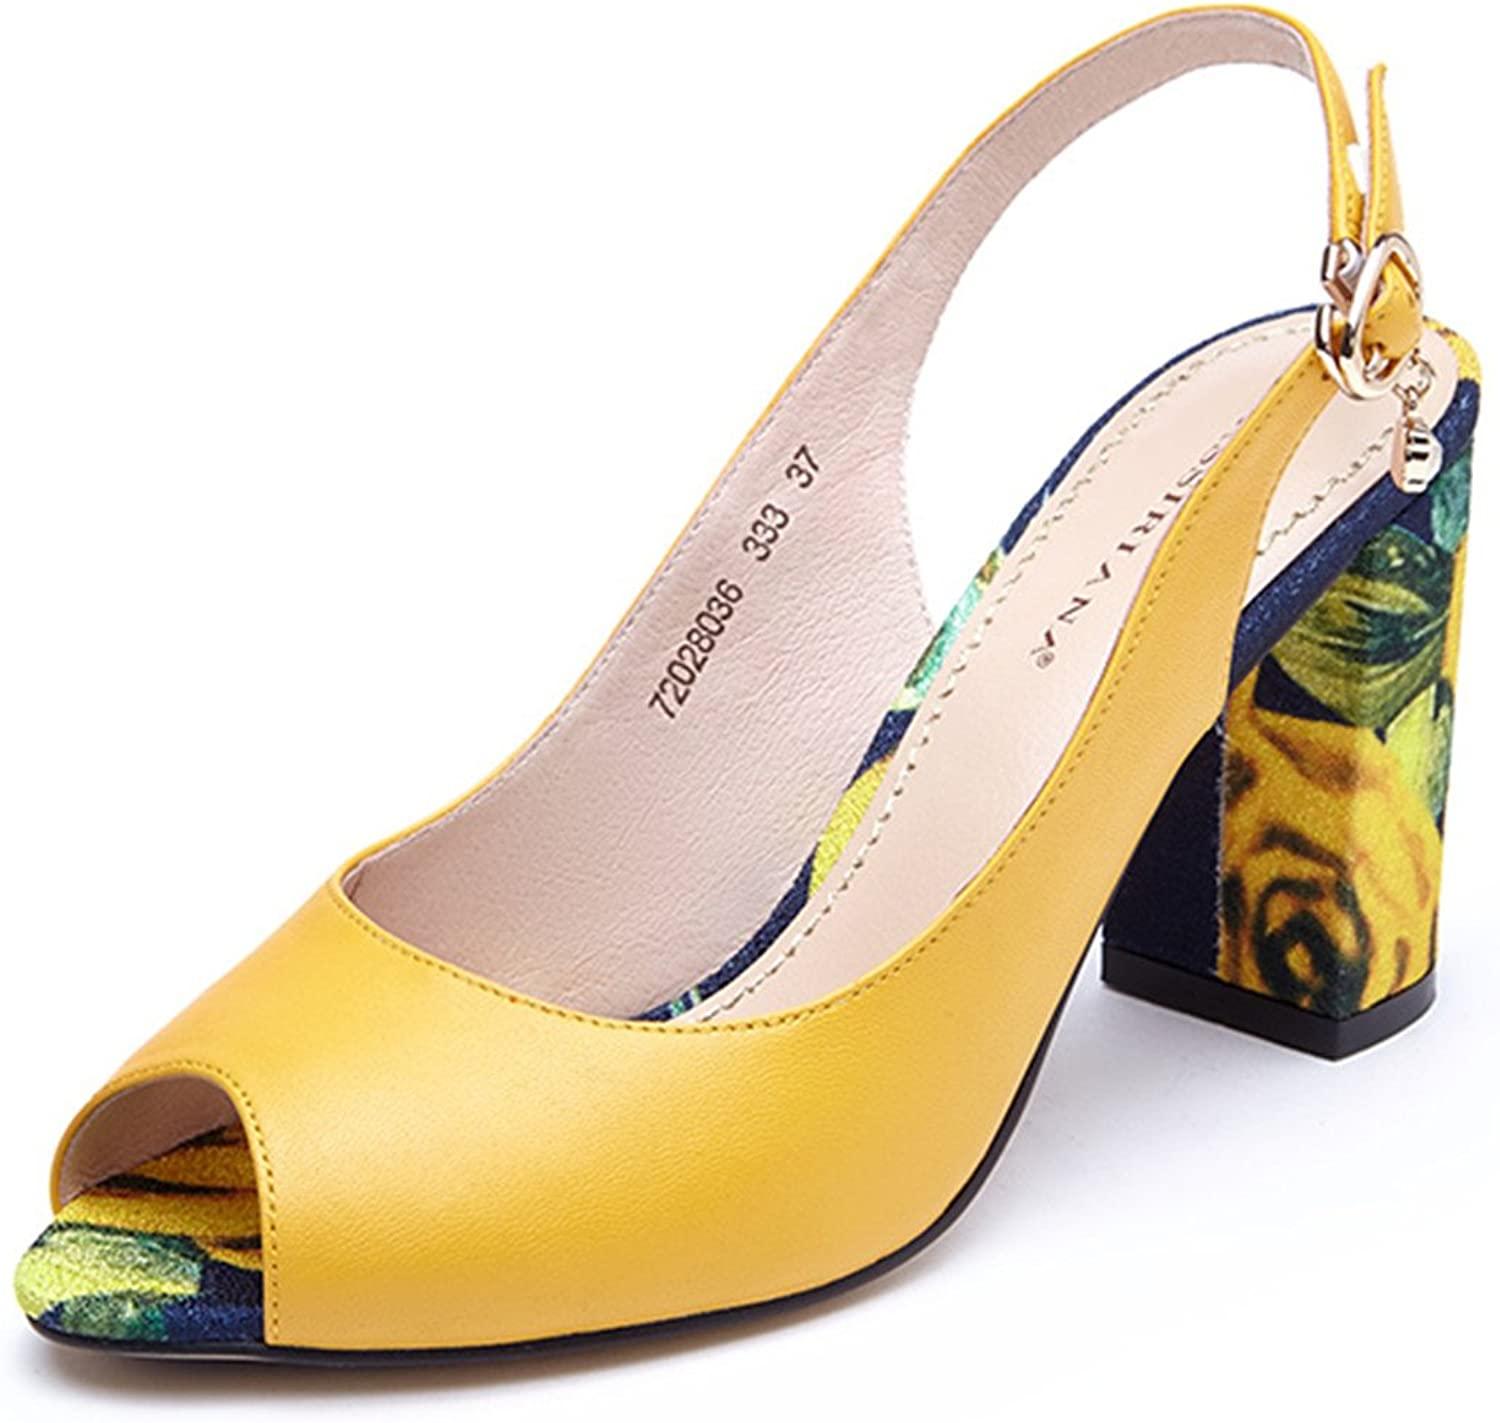 Ivan Johns Sandals Women Summer New New Leather shoes Woman High Heels Open Toe Back Strap Yellow White 35-40